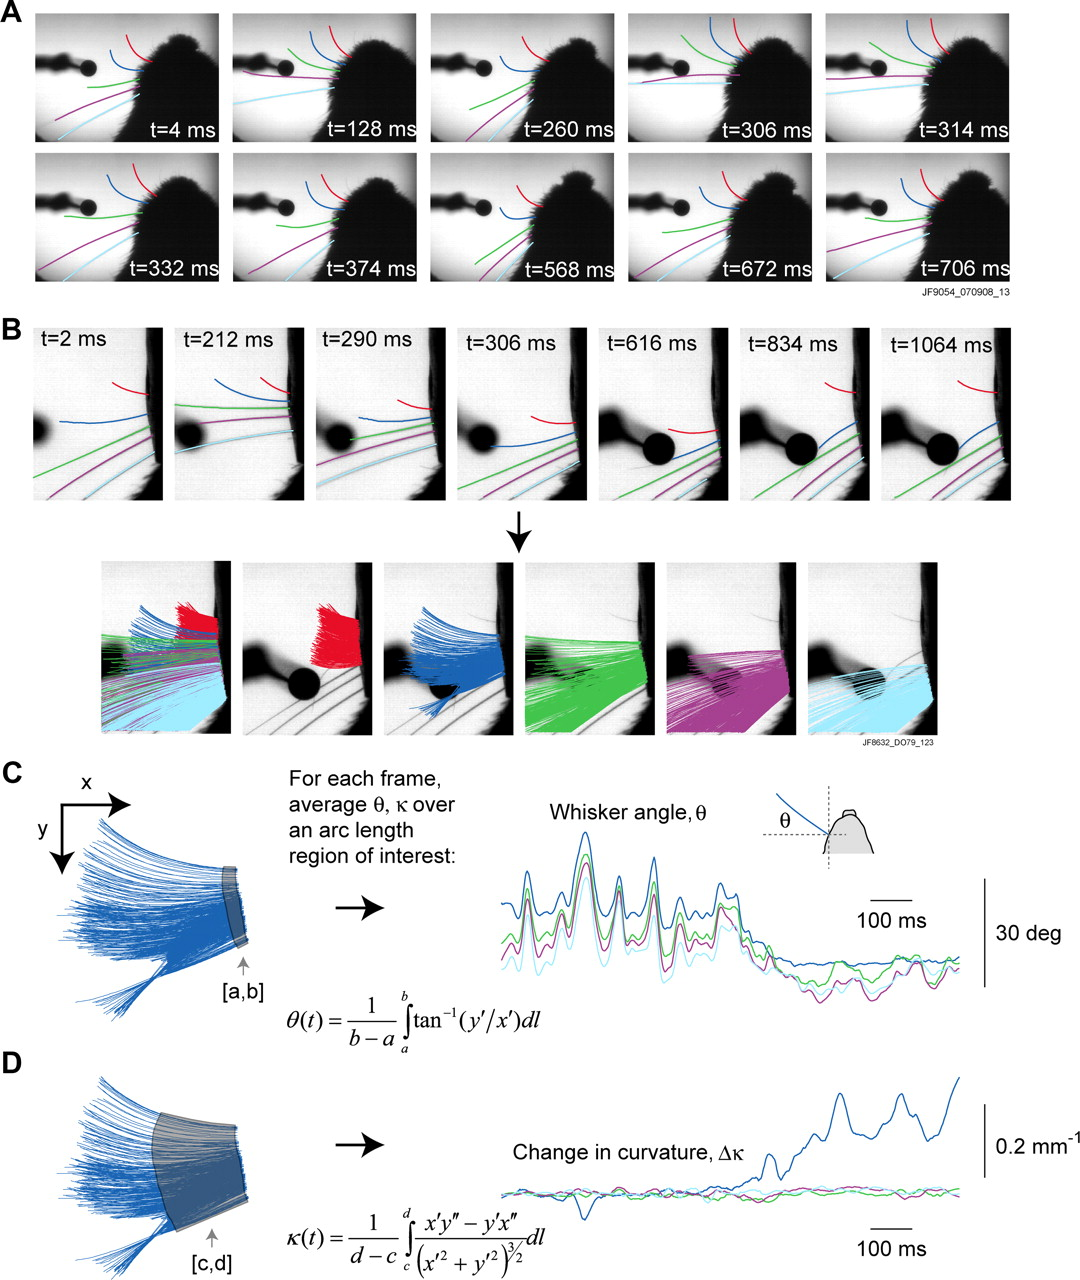 Vibrissa Based Object Localization In Head Fixed Mice Journal Of Nl5 Is Circuit Simulator Software A That Helps Download Figure